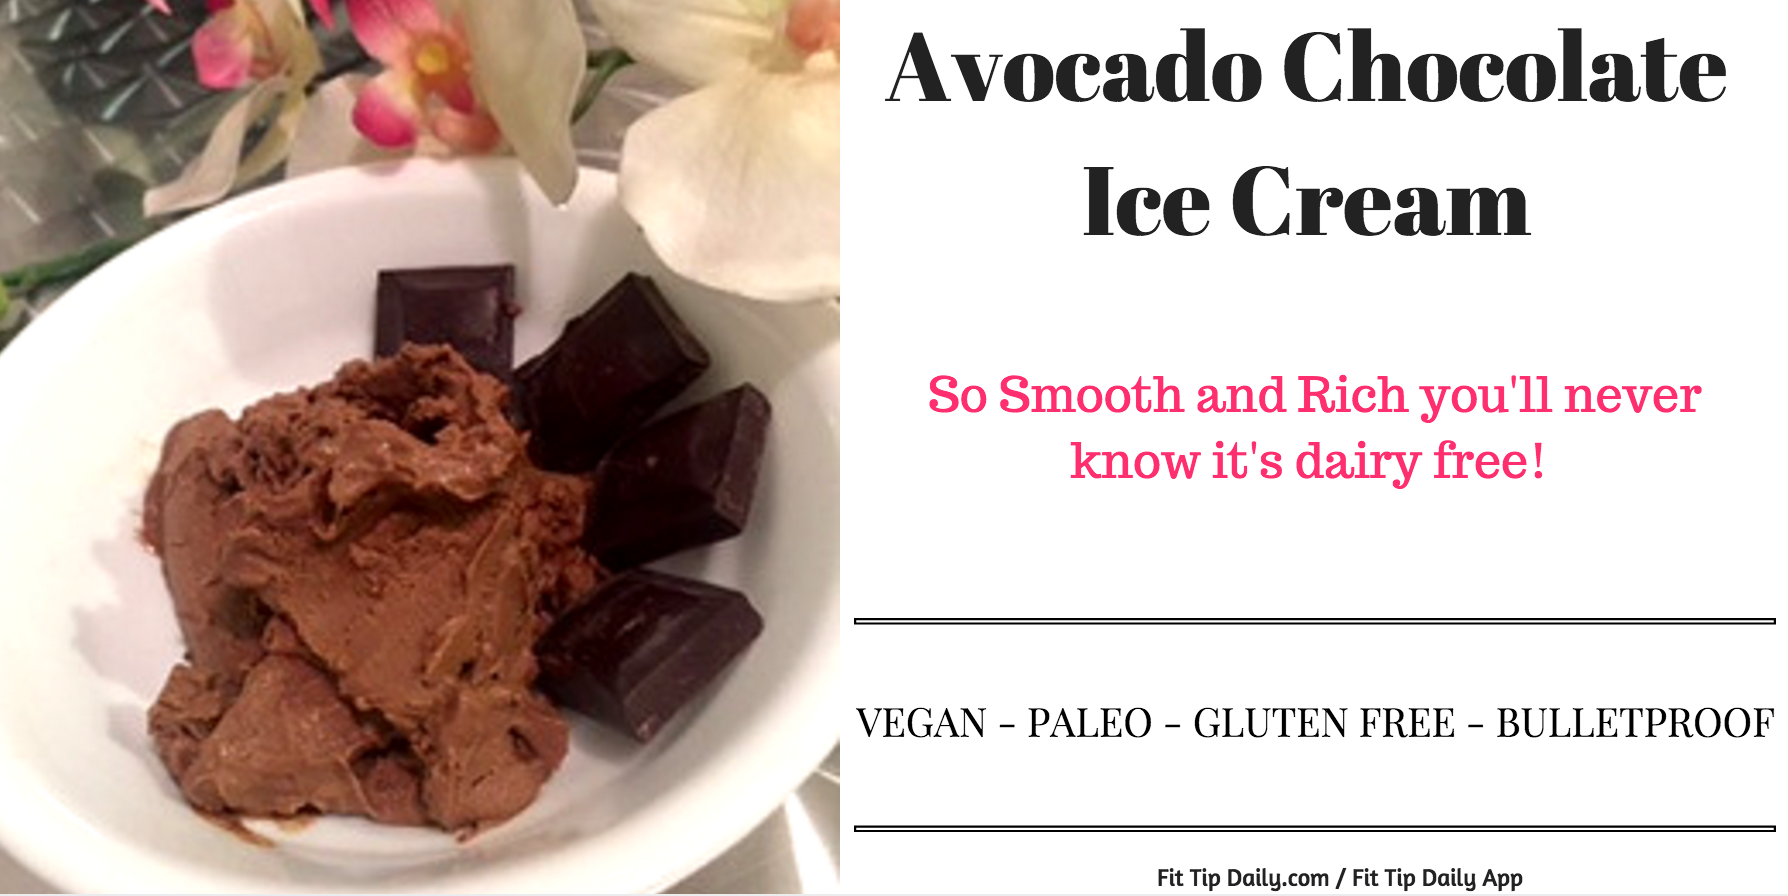 Low Carb Monday - Vegan Chocolate Avocado Ice Cream - Fit Tip Daily